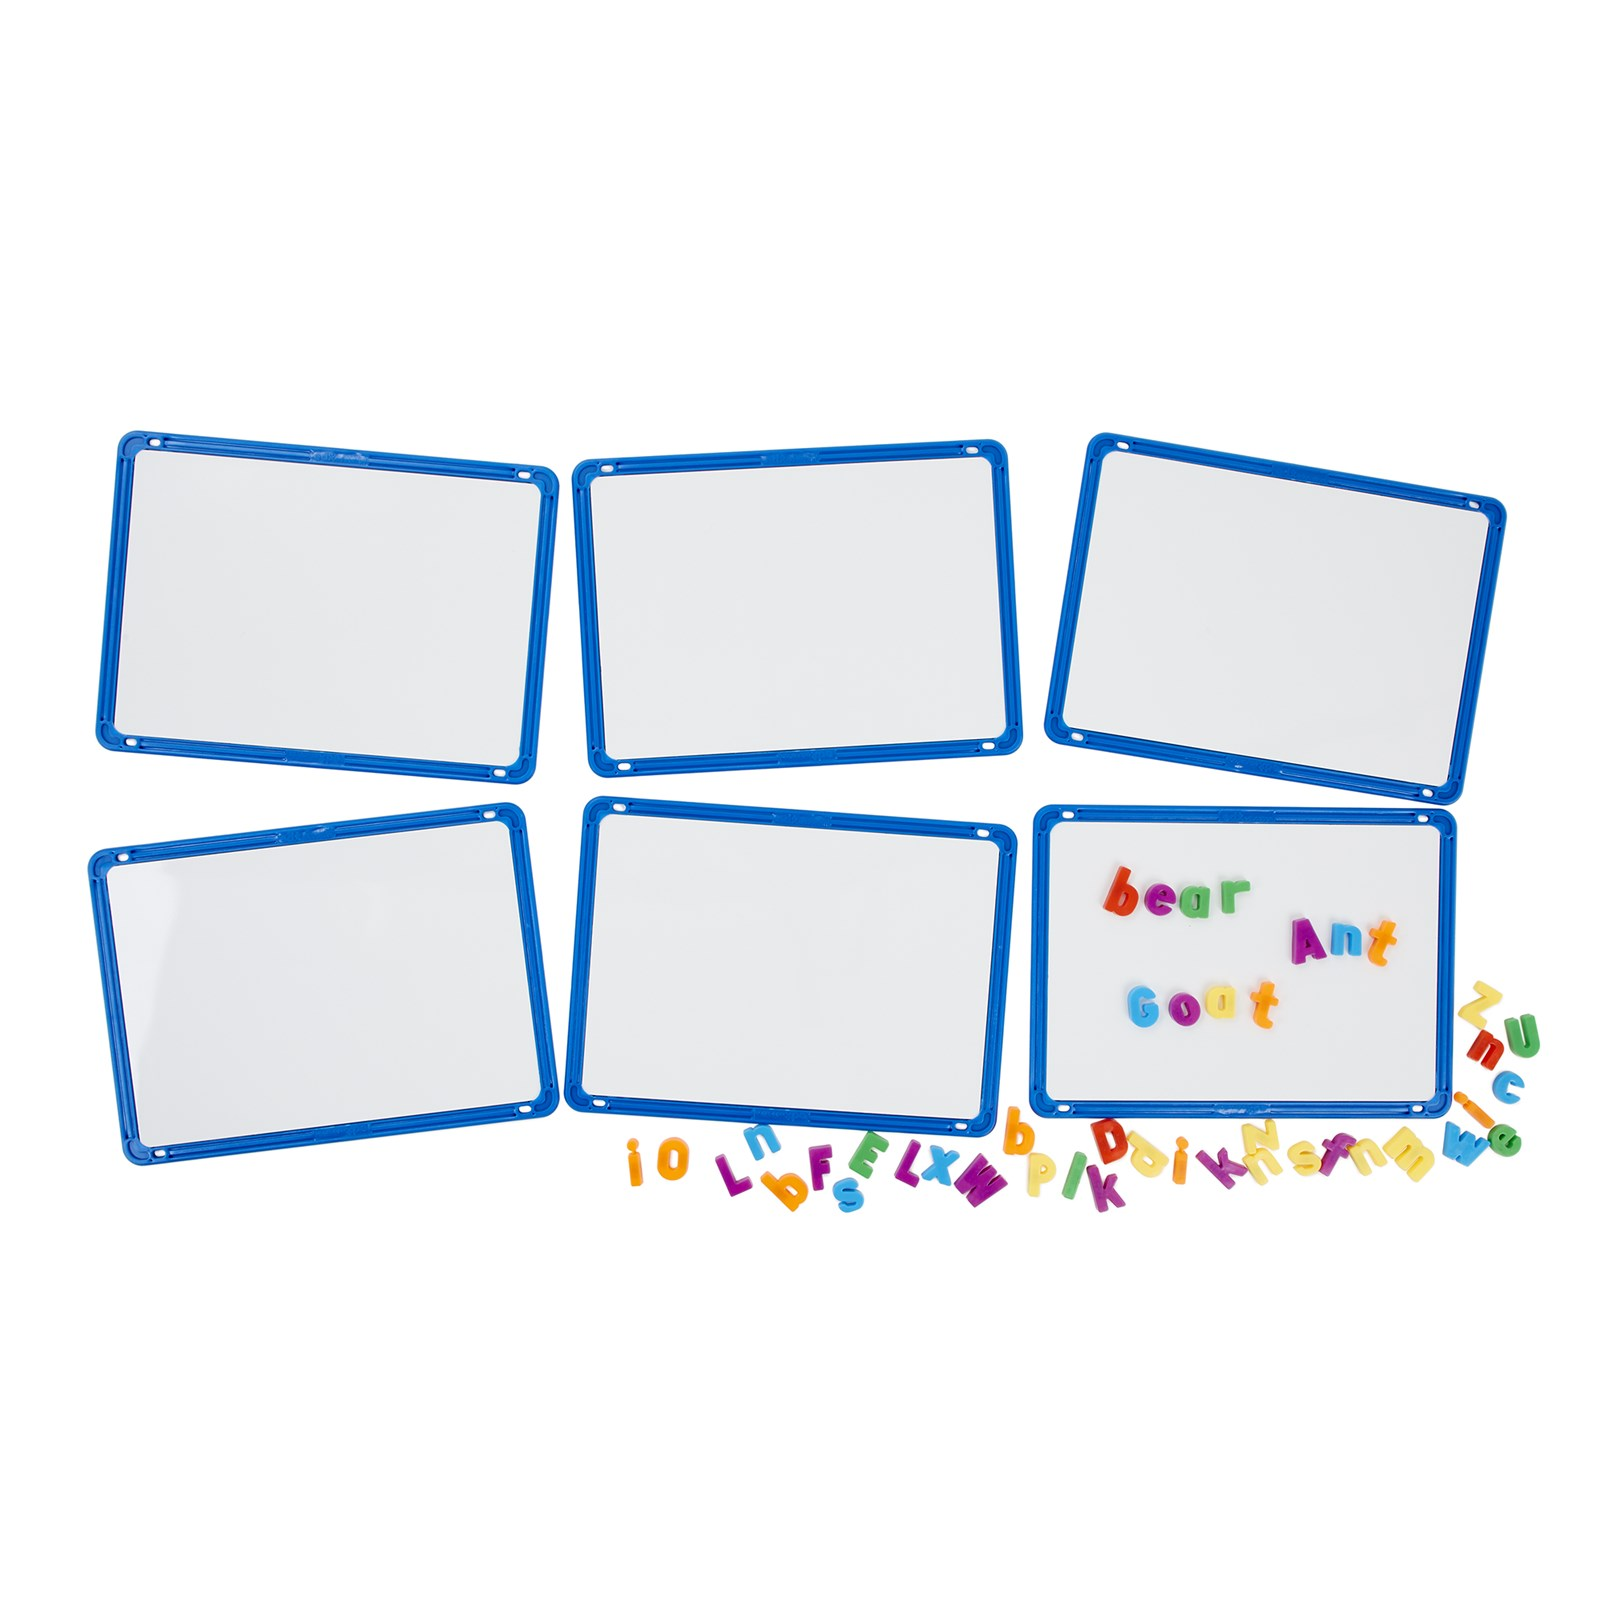 Magnetic Dry-wipe Boards - Pack of 6